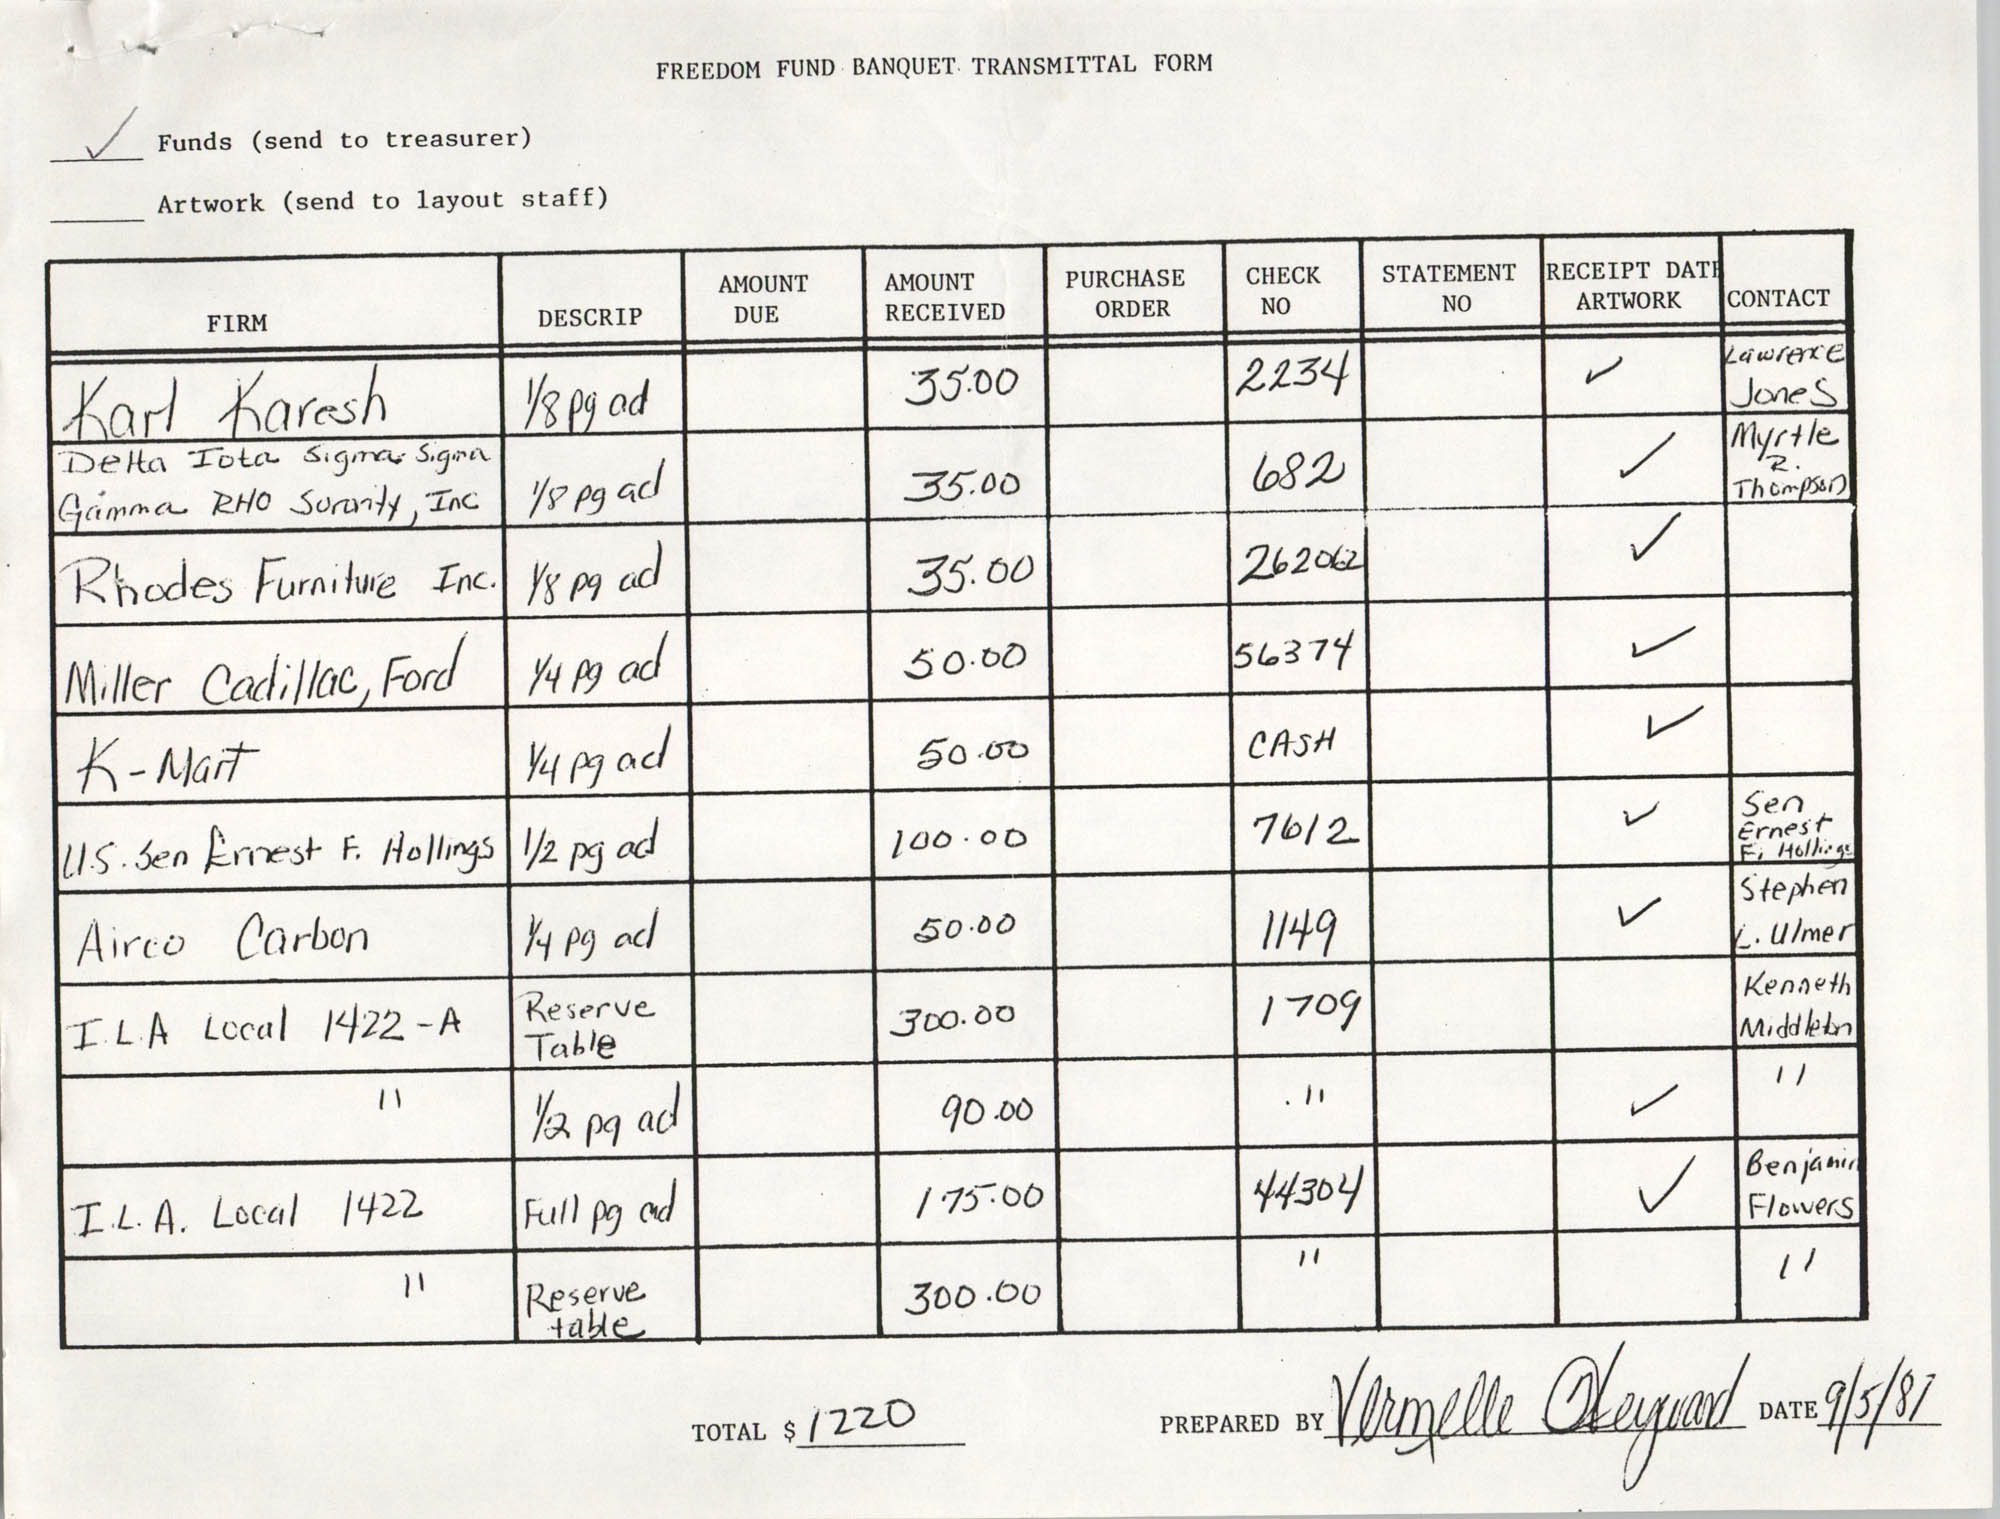 Freedom Fund Banquet Transmittal Forms, September 5, 1987, Page 2